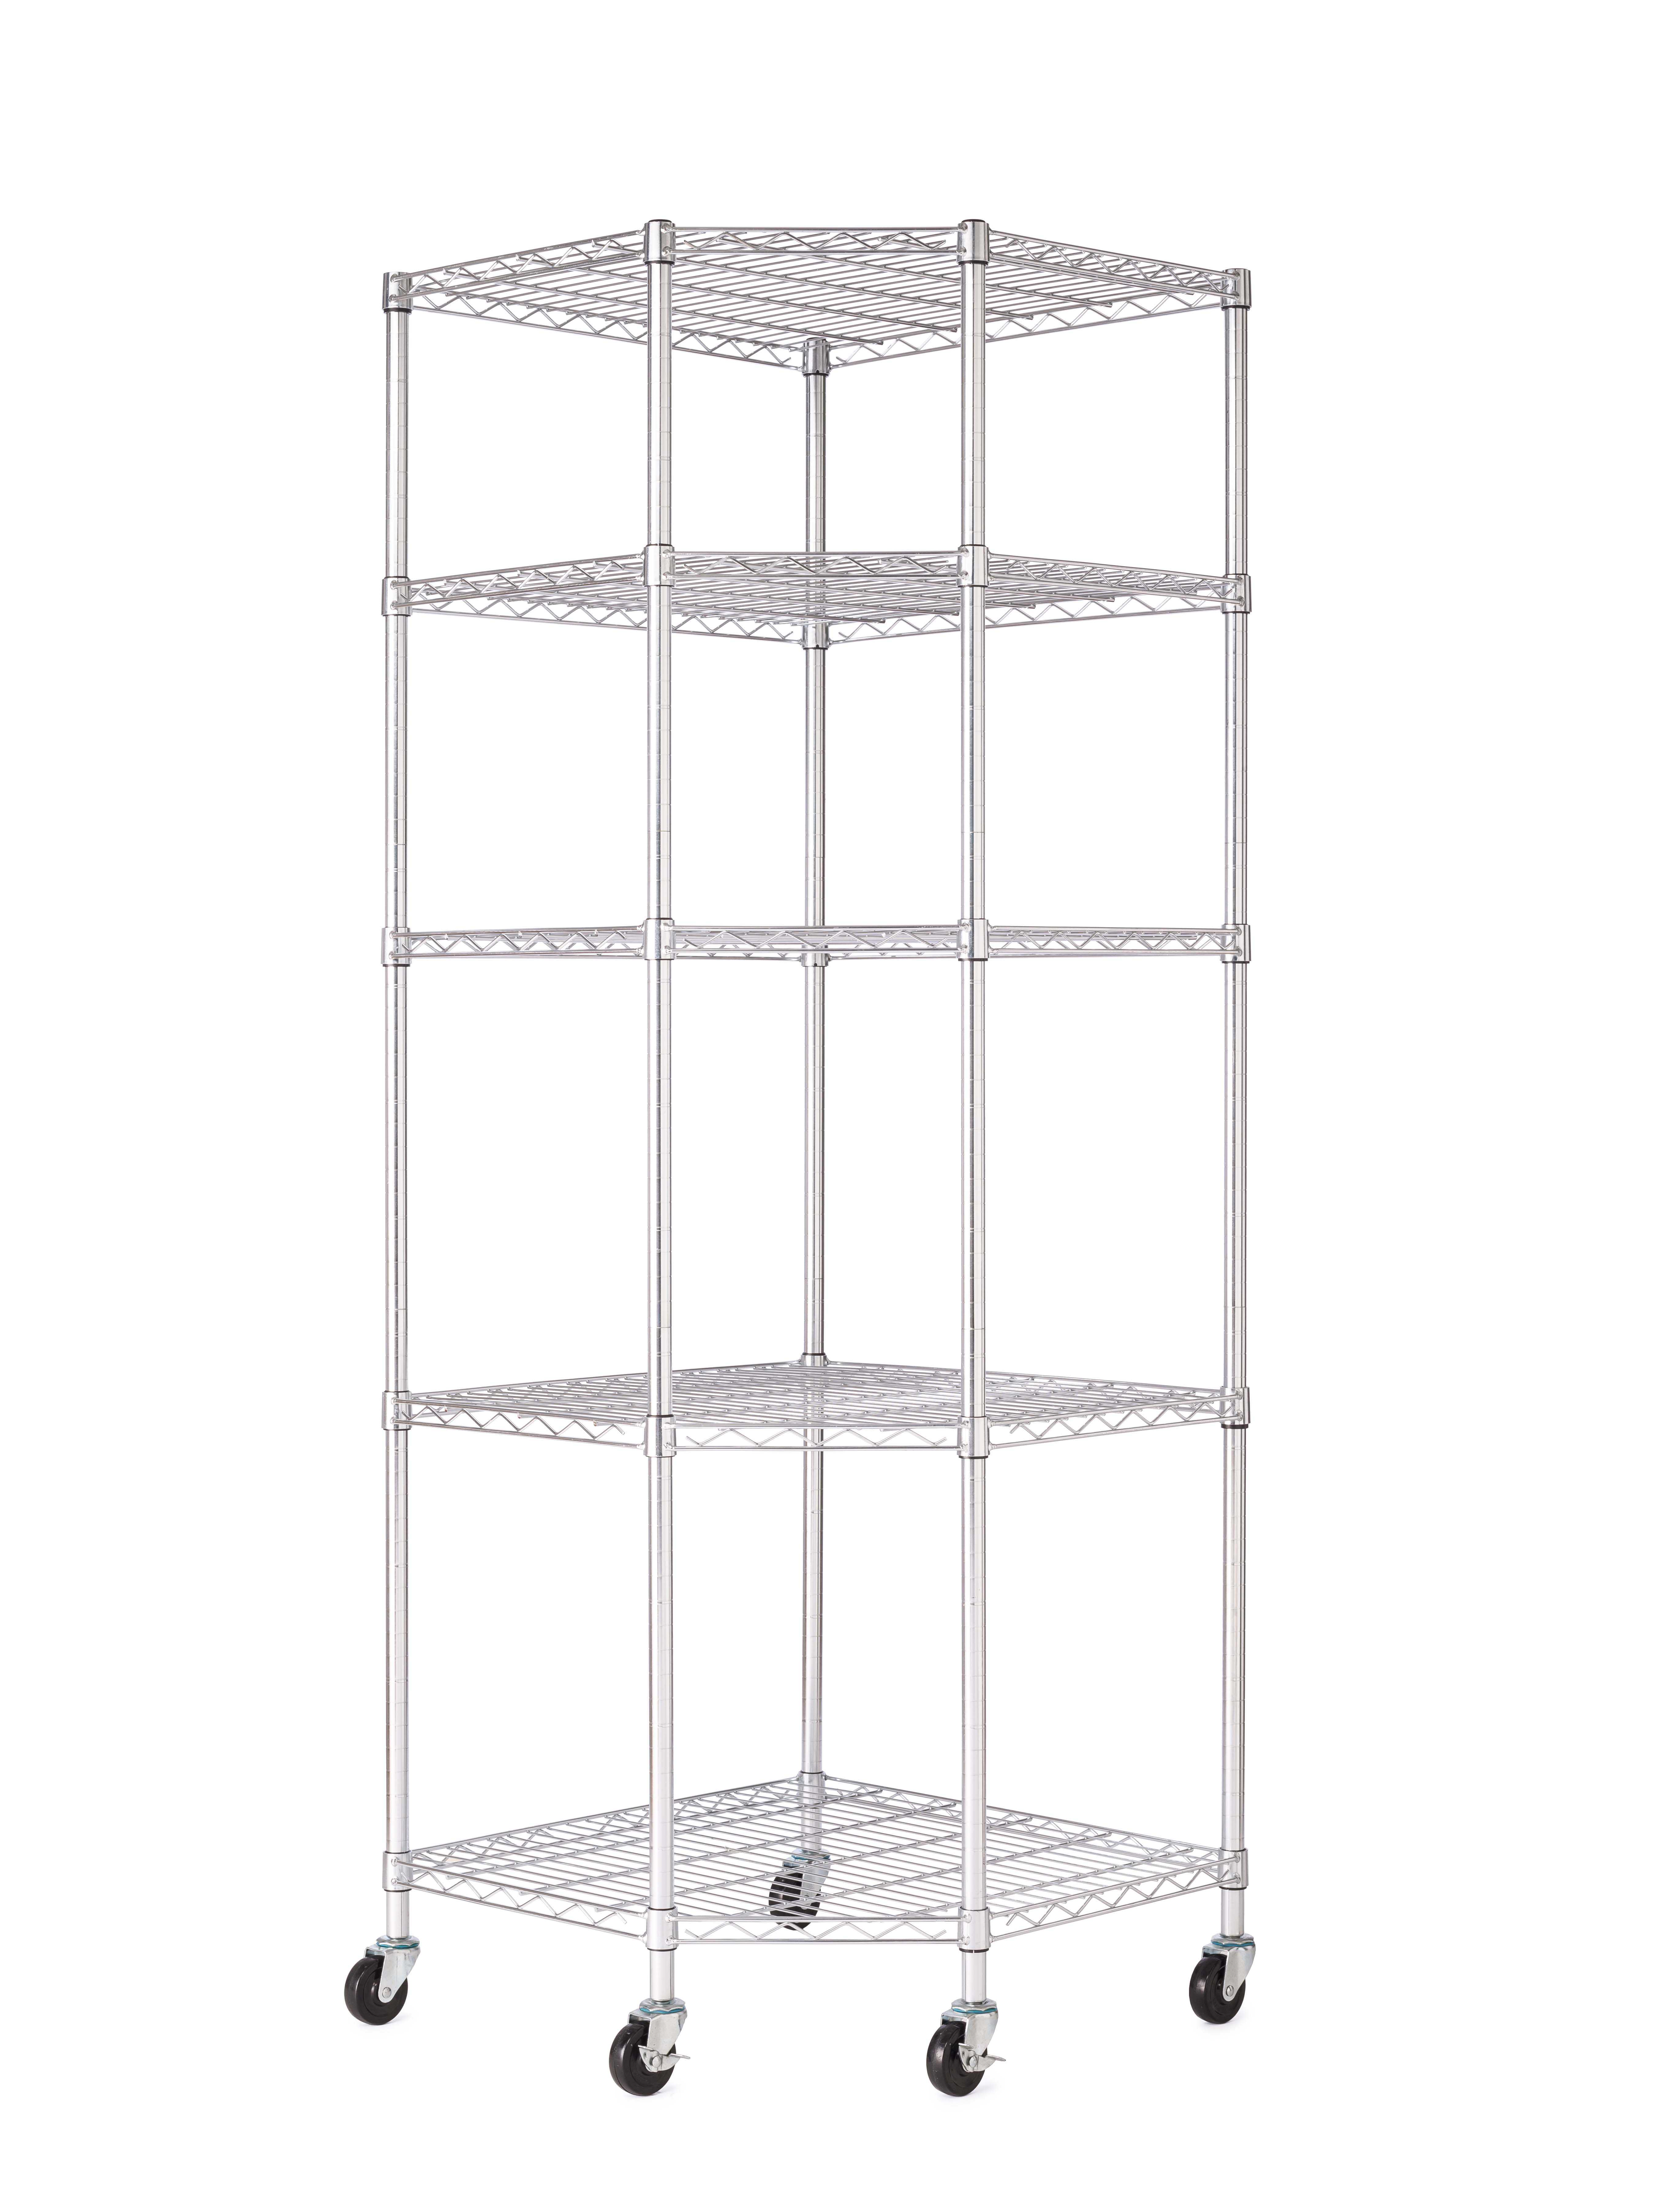 HSS 5-Tier Wire Shelving Corner Rack Corner with 3' Casters, 27'Dx27'Wx75'H, Chrome